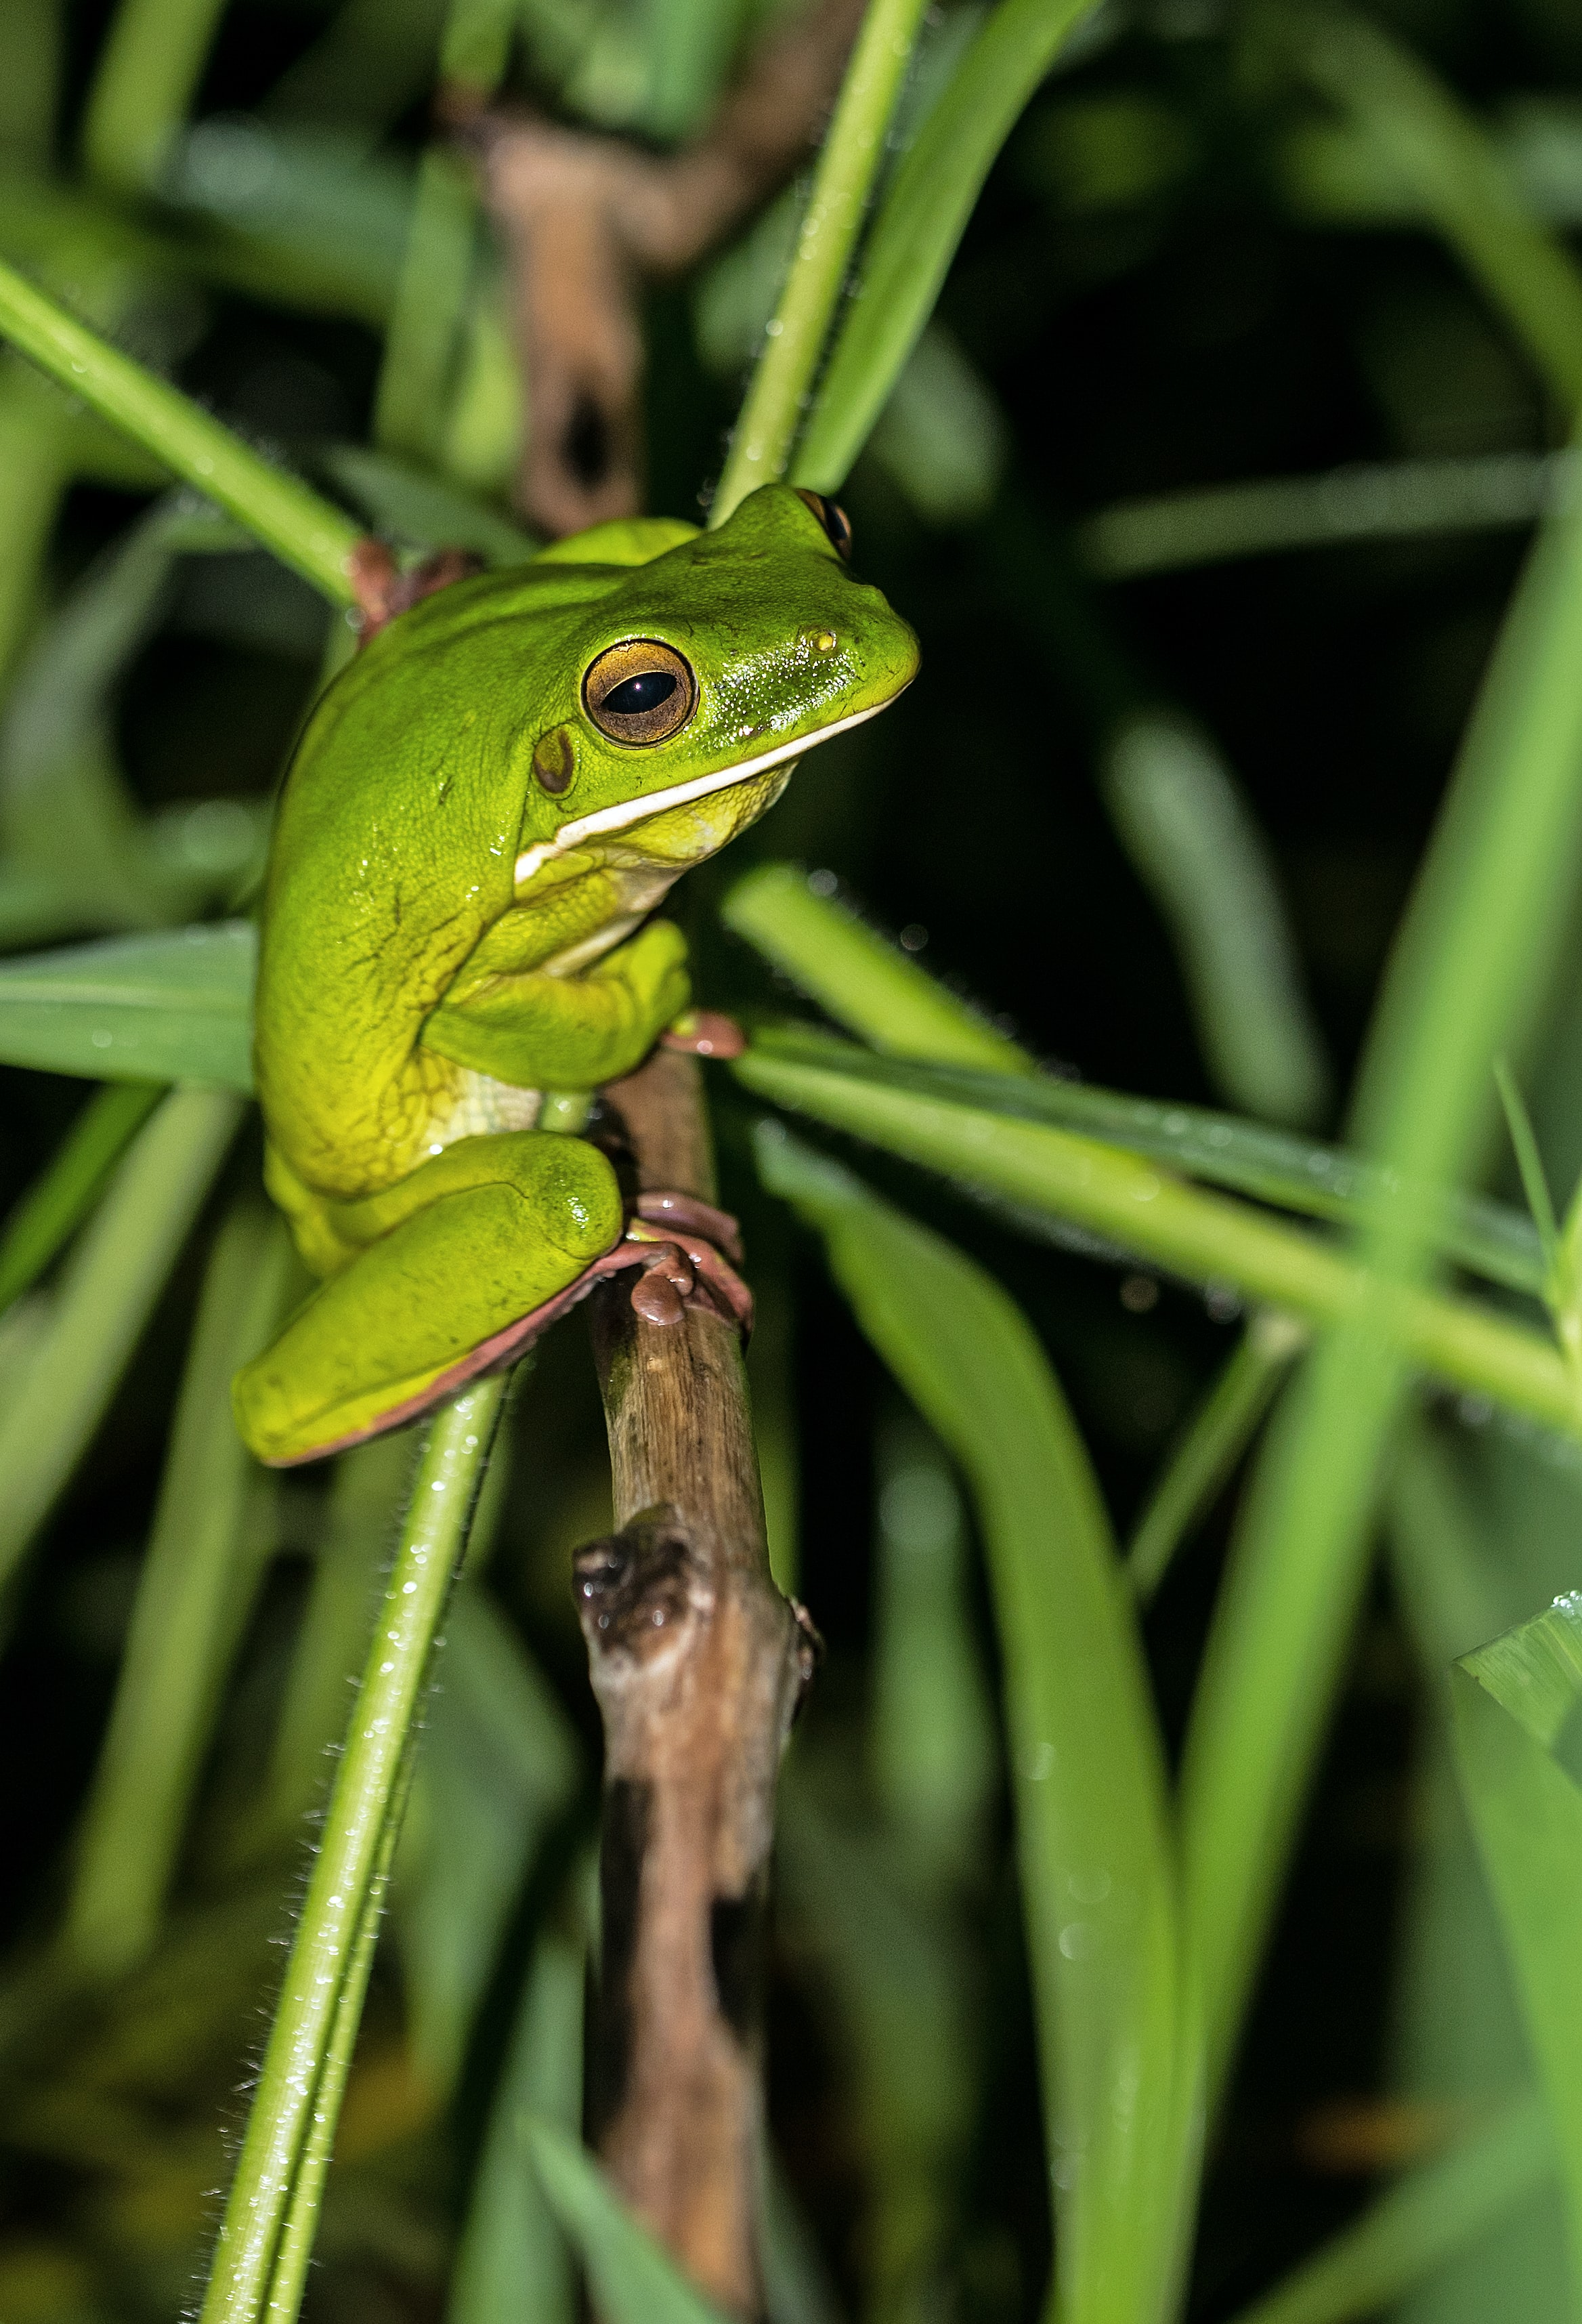 close-up photo of green tree frog